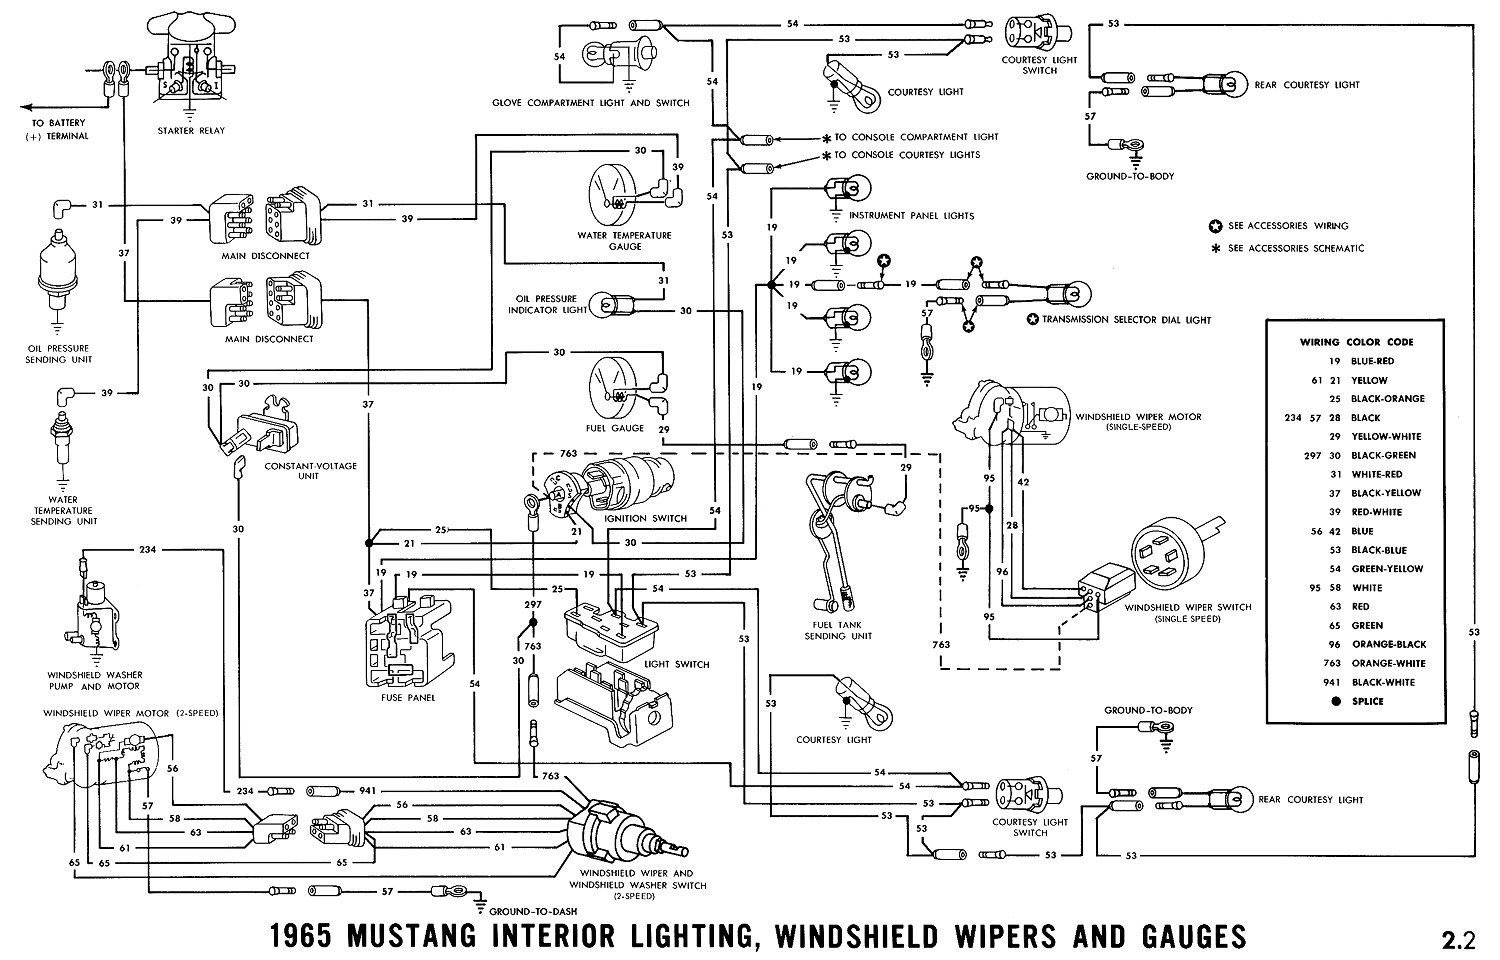 1965 Mustang Wiring Diagrams Average Joe Restoration Light Switch Diagram For 1989 Club Car Oil Pressure